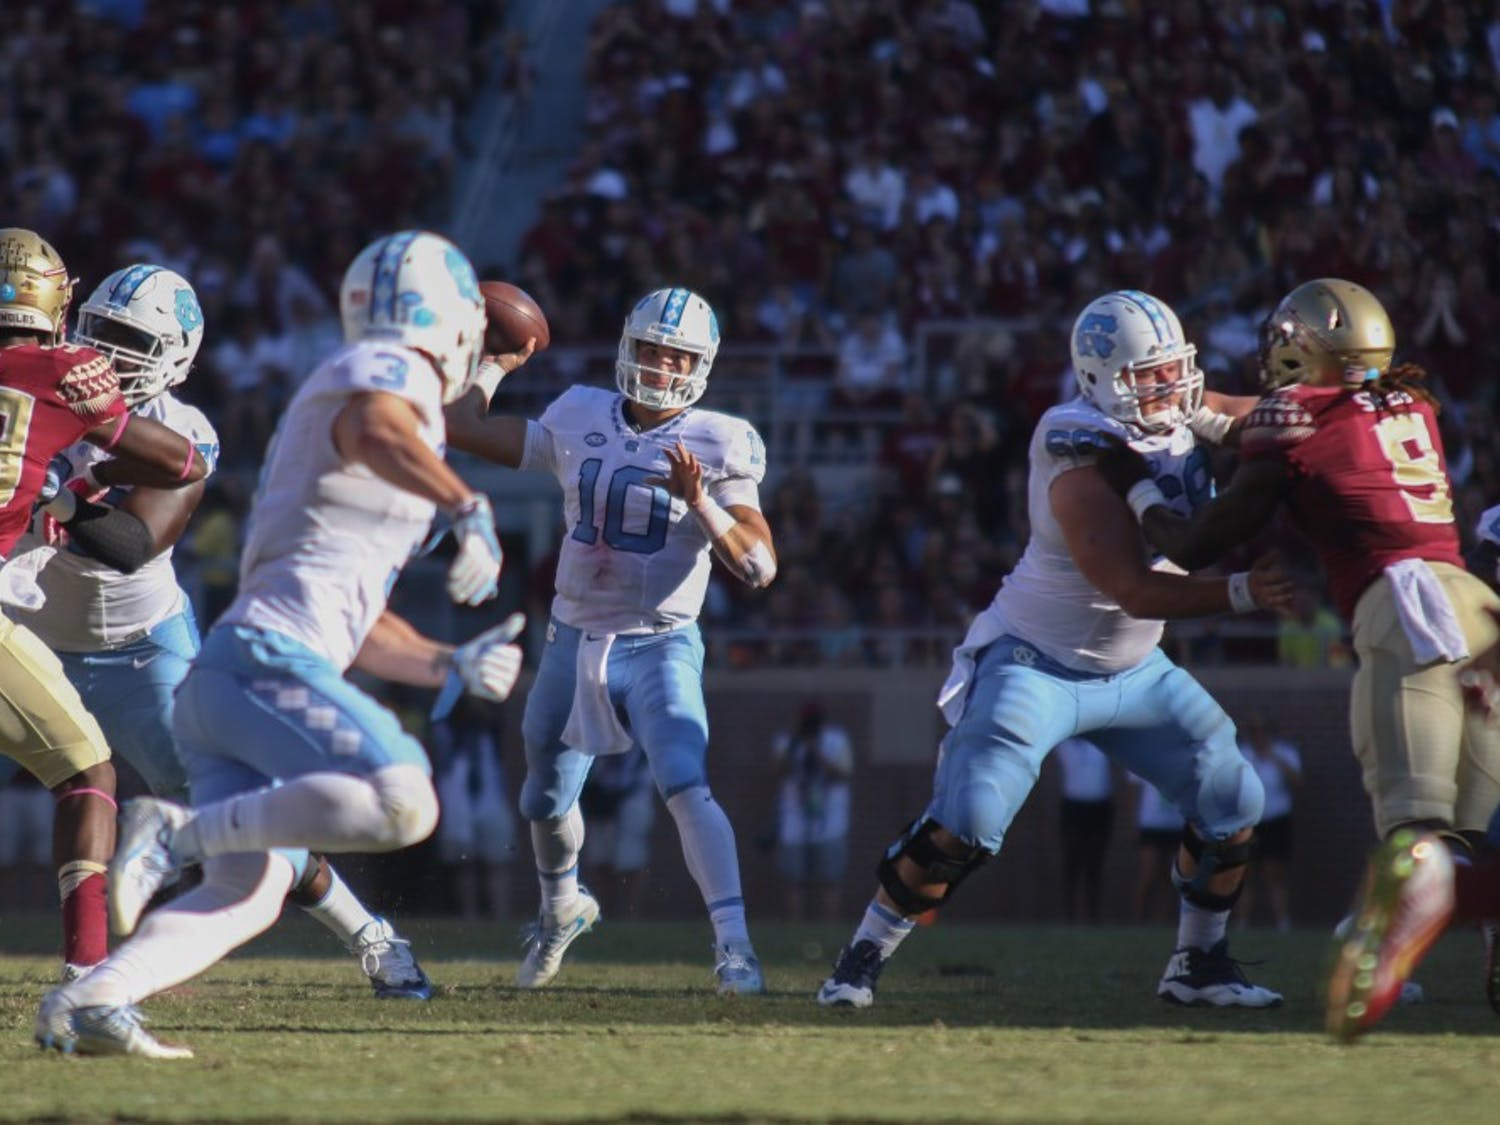 UNC quarterback Mitch Trubisky (10) prepares to deliver a pass to wide receiver Nick Switzer (3) on Oct. 1, 2016.